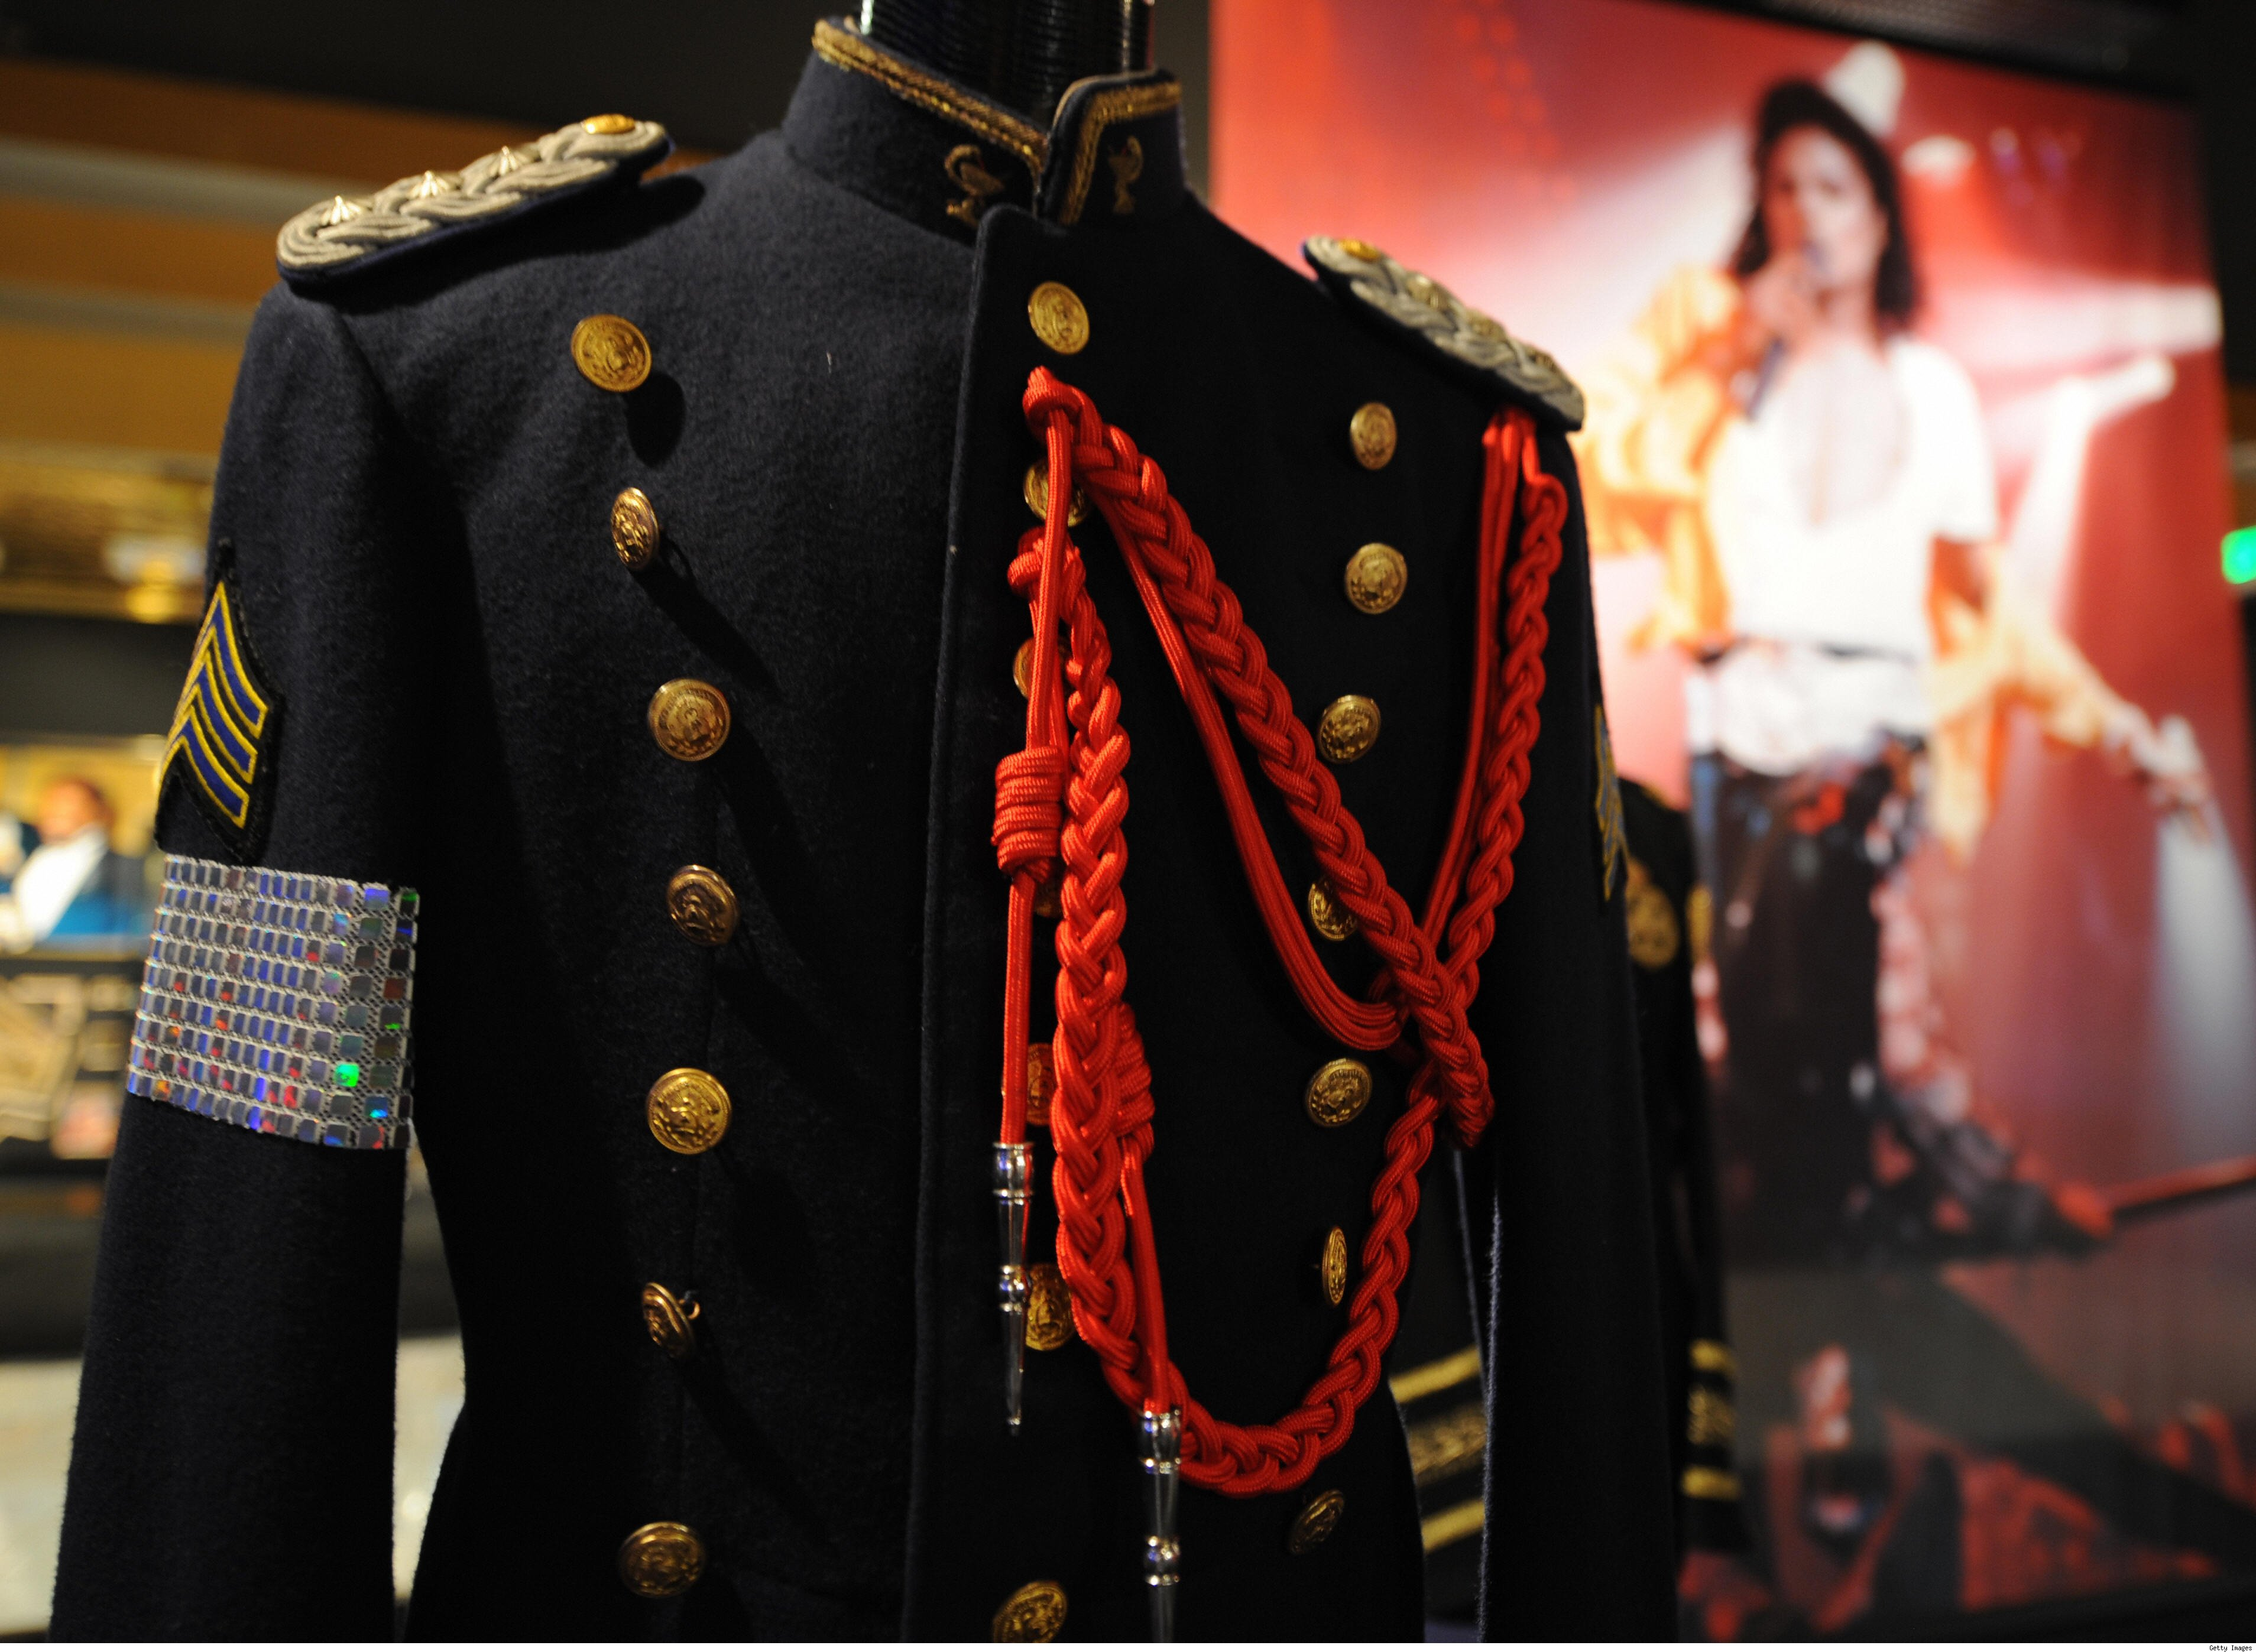 Scenes from the Michael Jackson Auction Exhibit